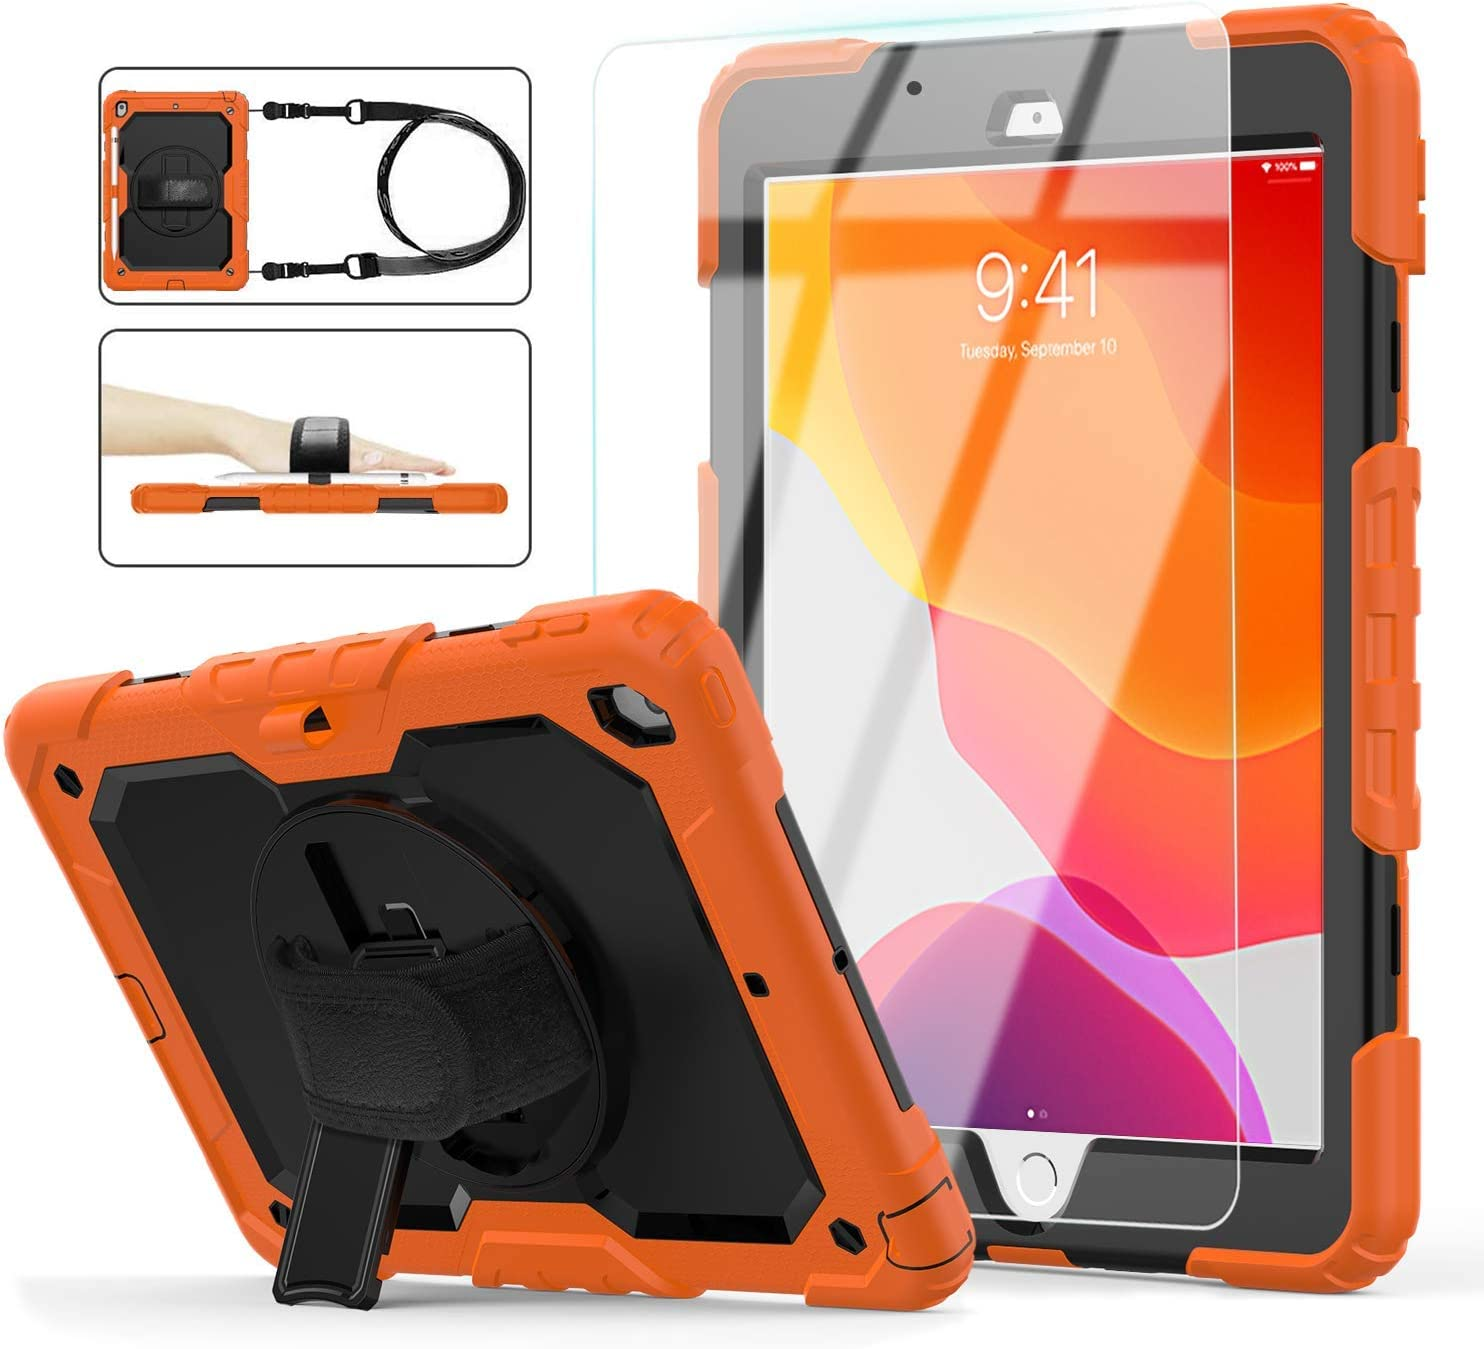 iPad 8th/7th Generation Case, iPad 10.2 Case 2020/2019, [Shockproof] ambison Full Body Protective Case with 9H Tempered Glass, Rotatable Kickstand & Hand Strap, Shoulder Strap (Orange & Black)